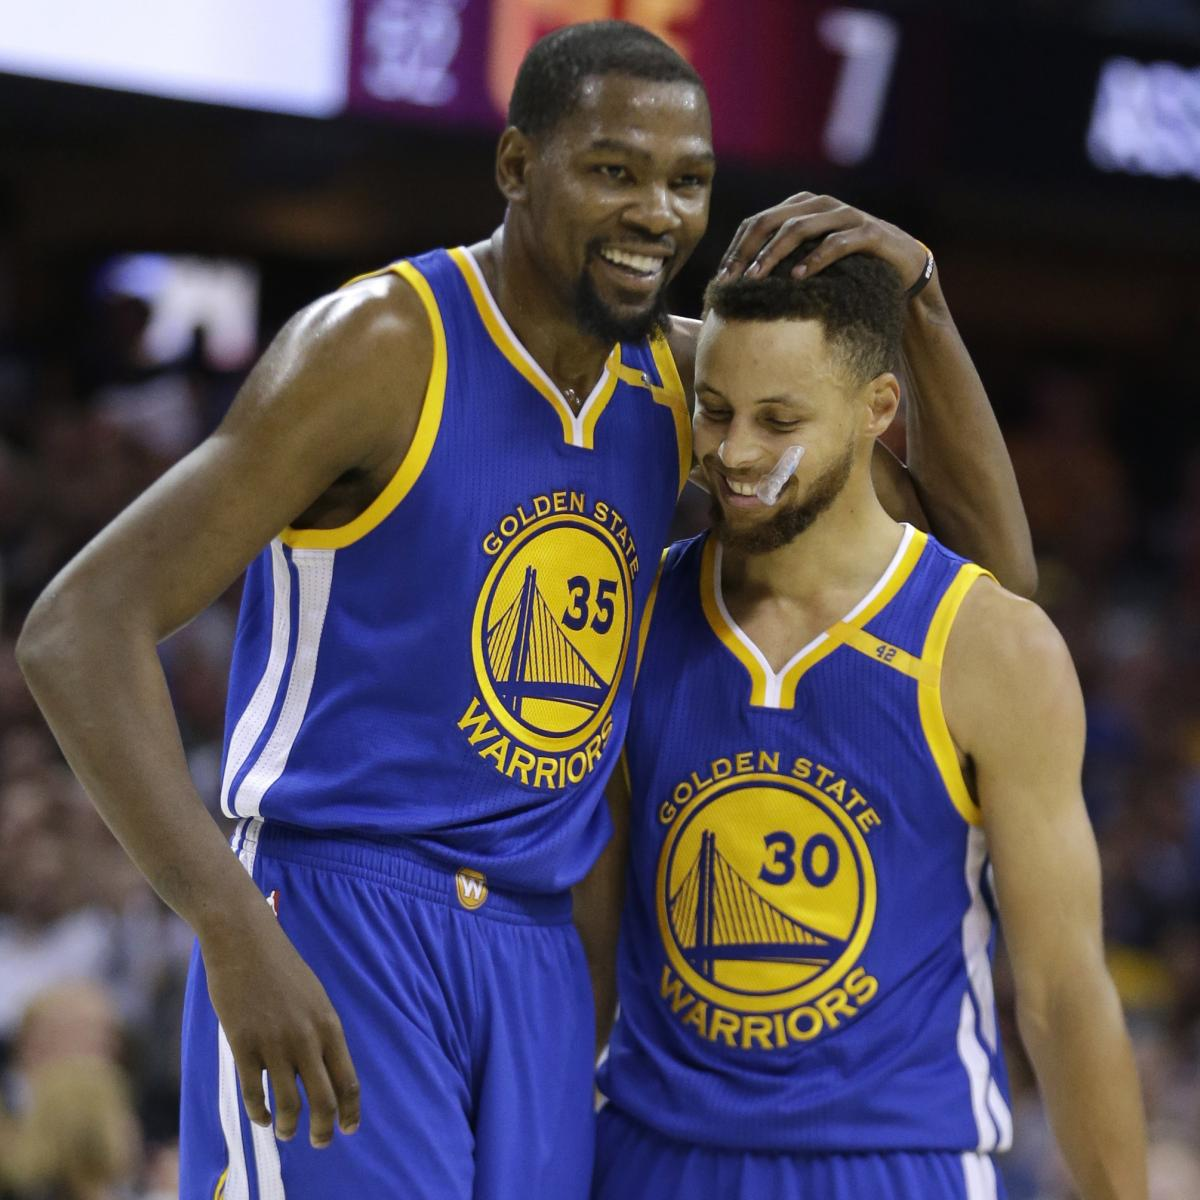 Warriors New Stadium Opening: Warriors' Season Tickets To Require Fans To Buy 30-Year